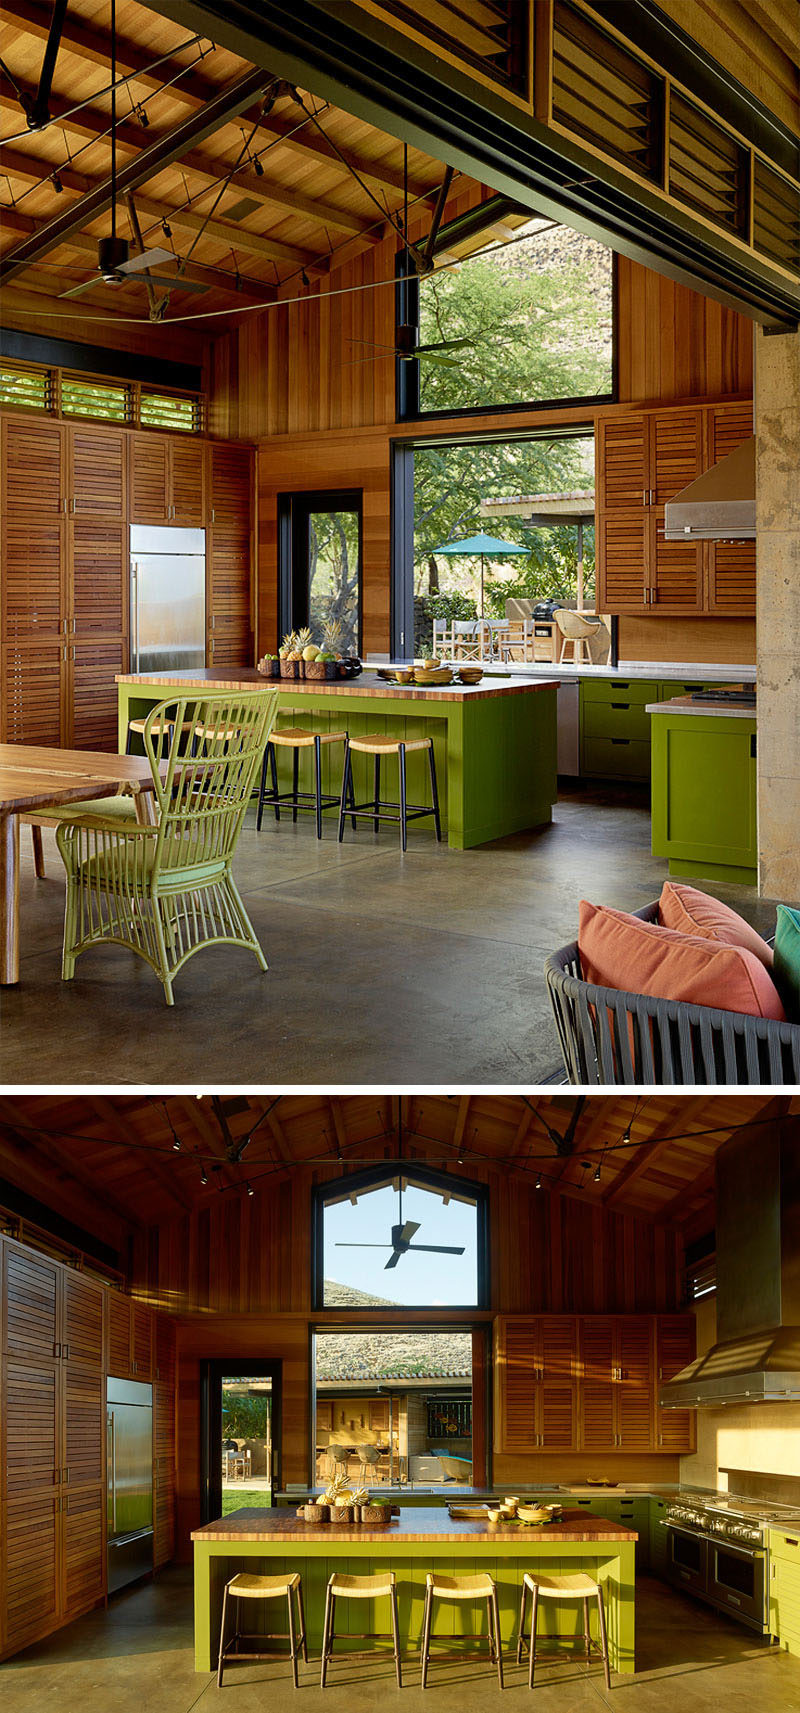 In this contemporary kitchen, green cabinets add a pop of color, while large windows provide ample natural light and let views of the other nearby gathering places be seen. #KitchenDesign #GreenKitchen #Wood